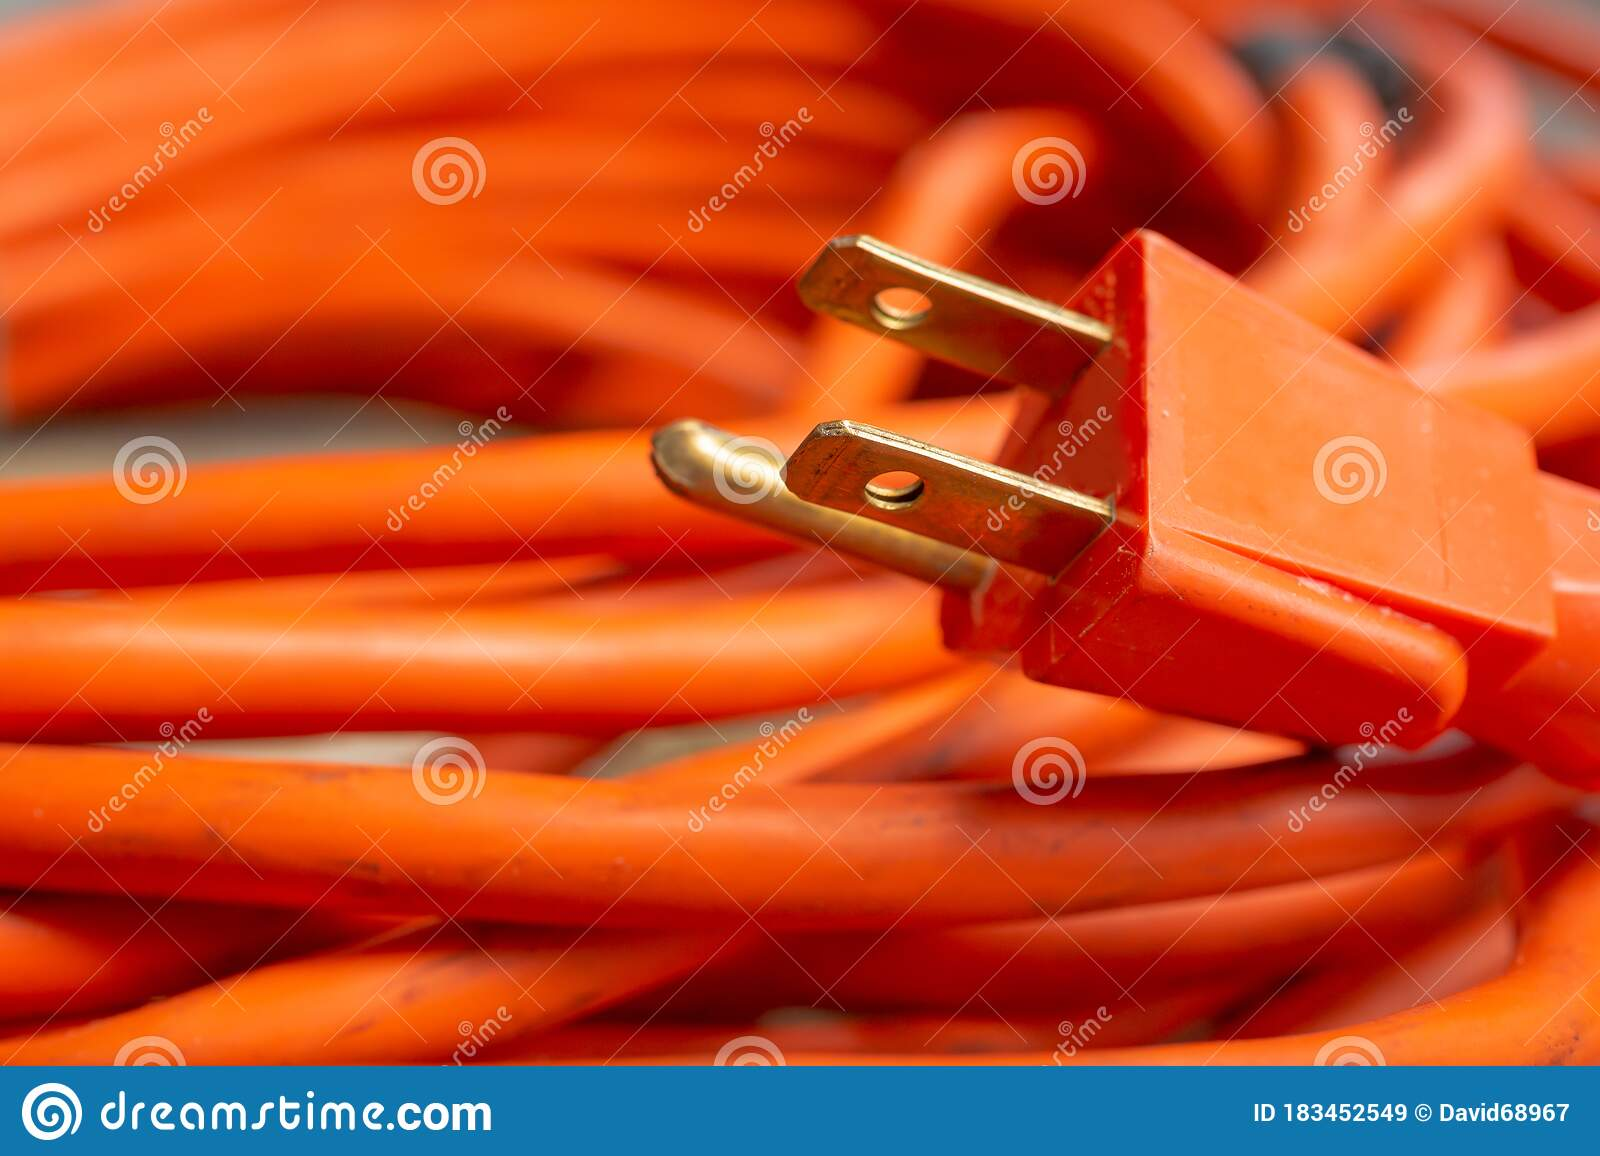 204 Cord Plug End Photos Free Royalty Free Stock Photos From Dreamstime